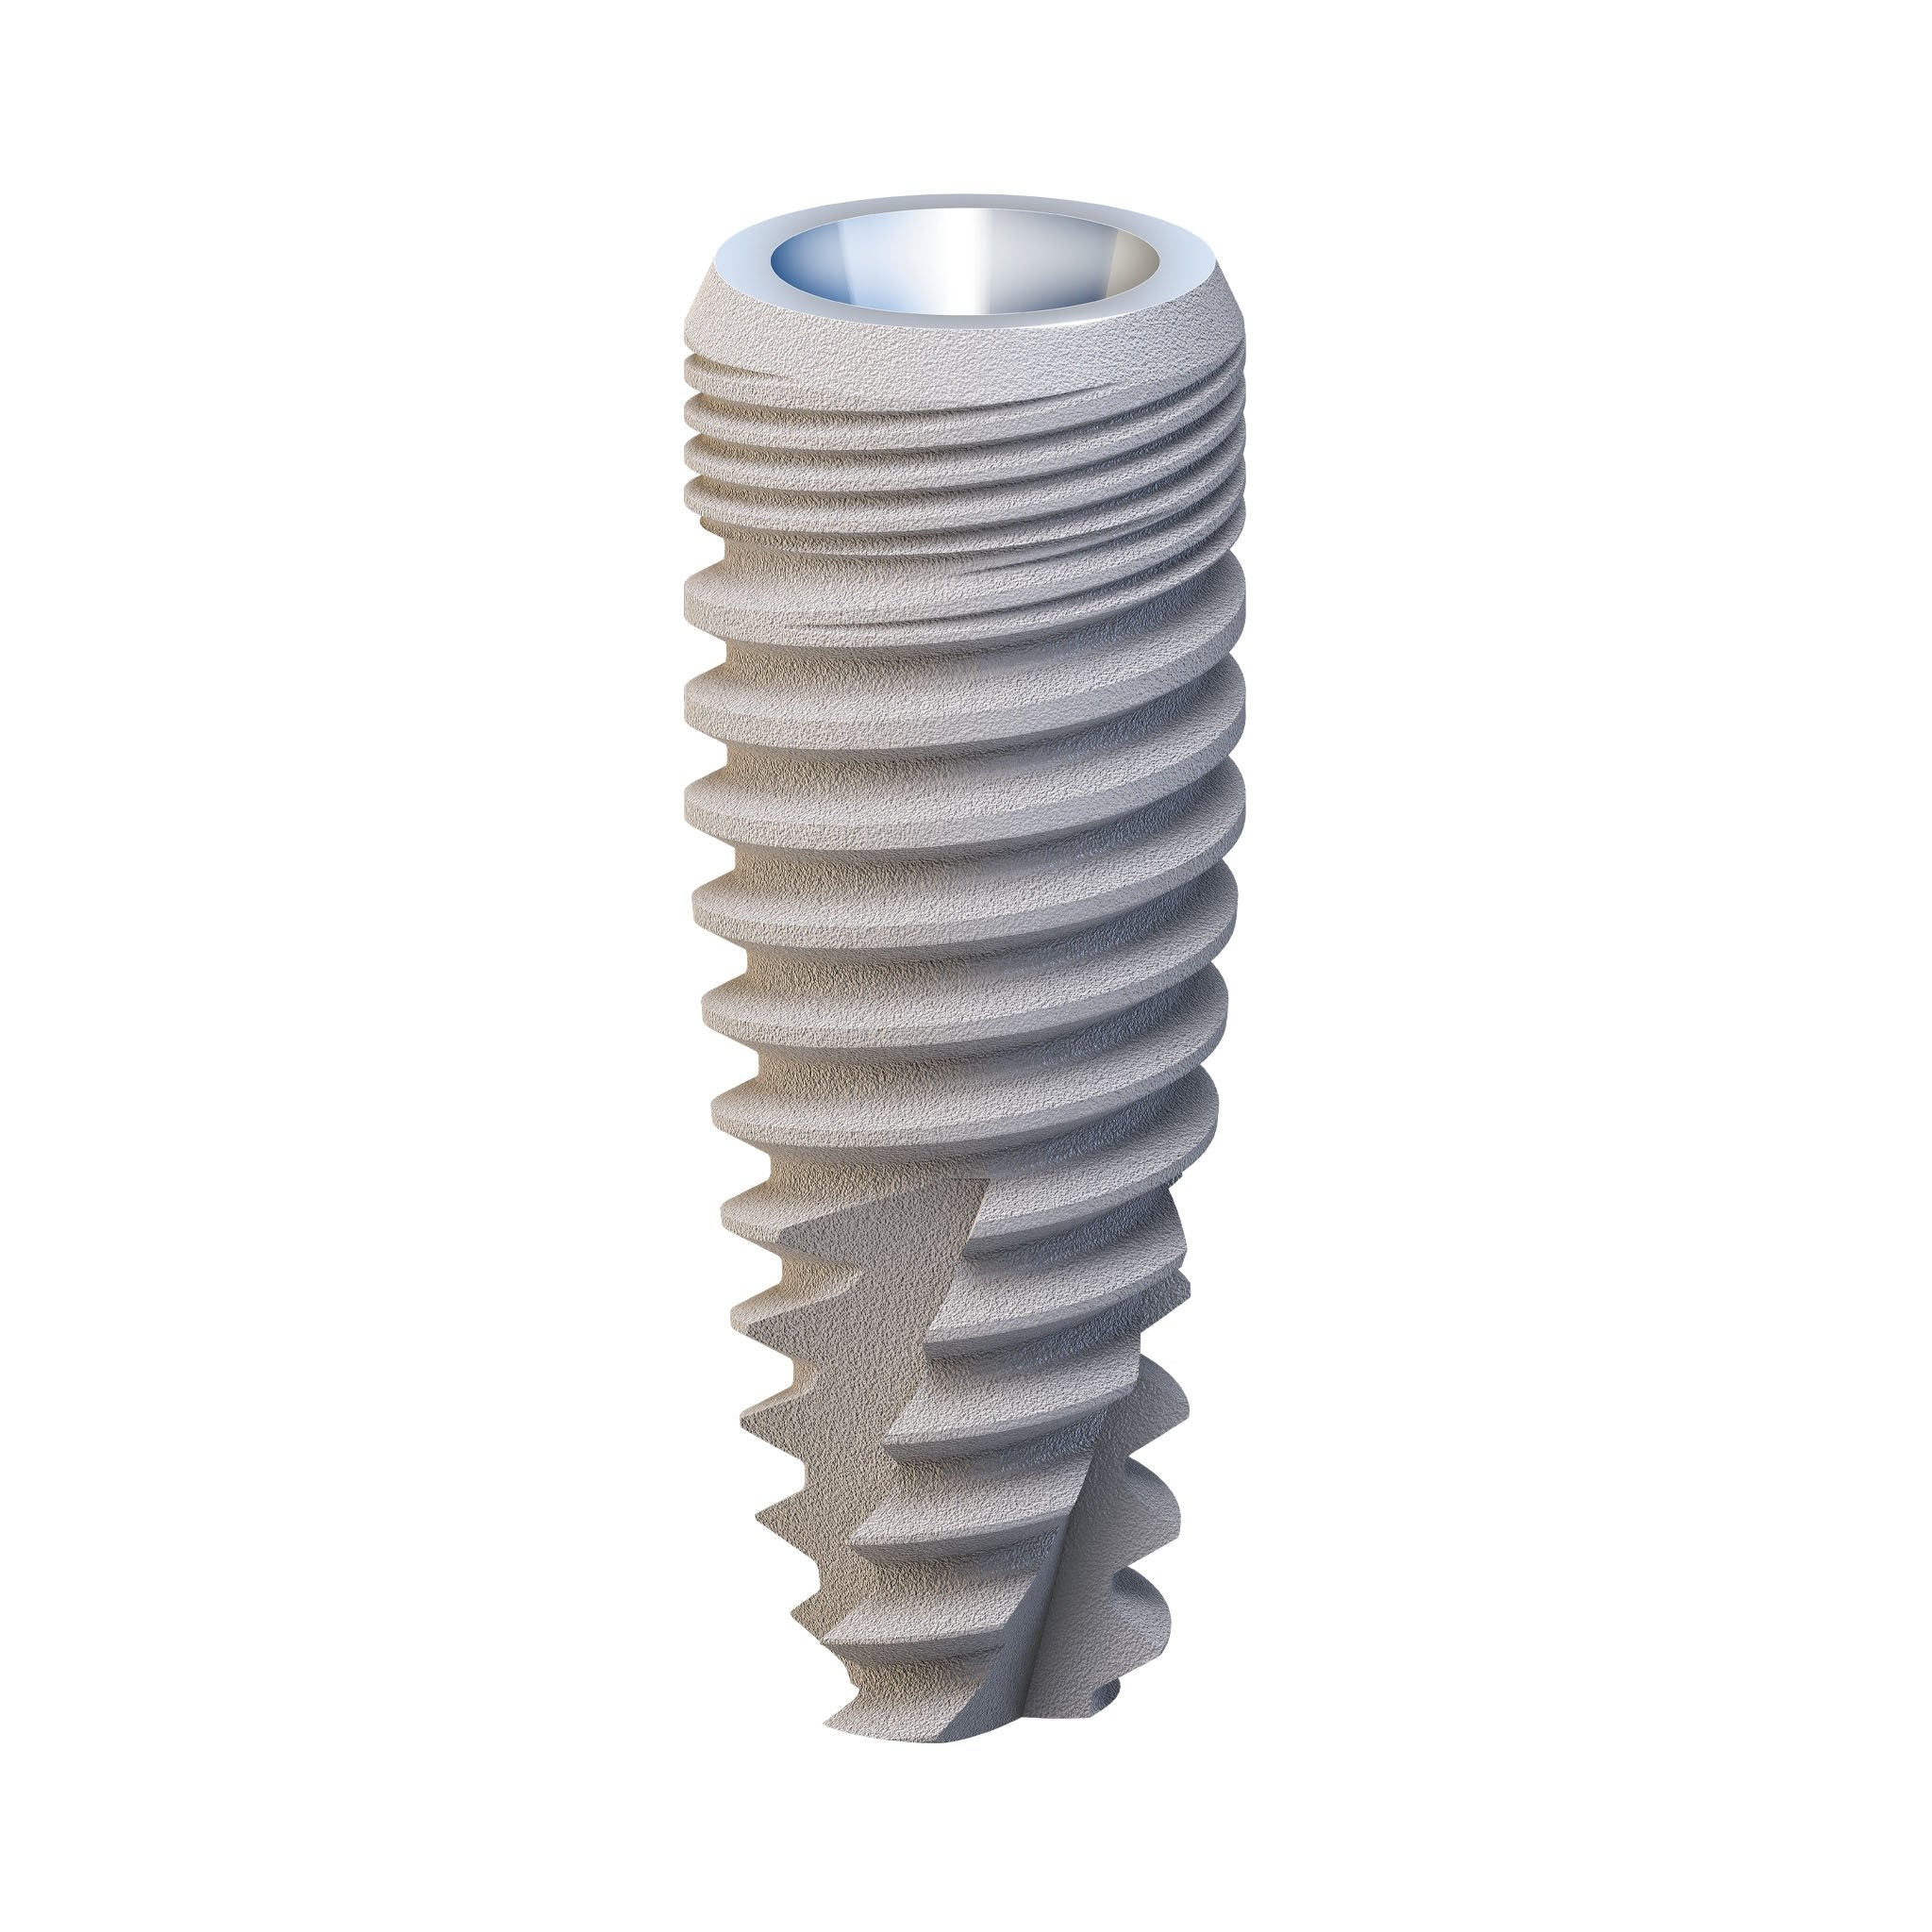 Conical Active Implant Ø 5 x 13mm | K3